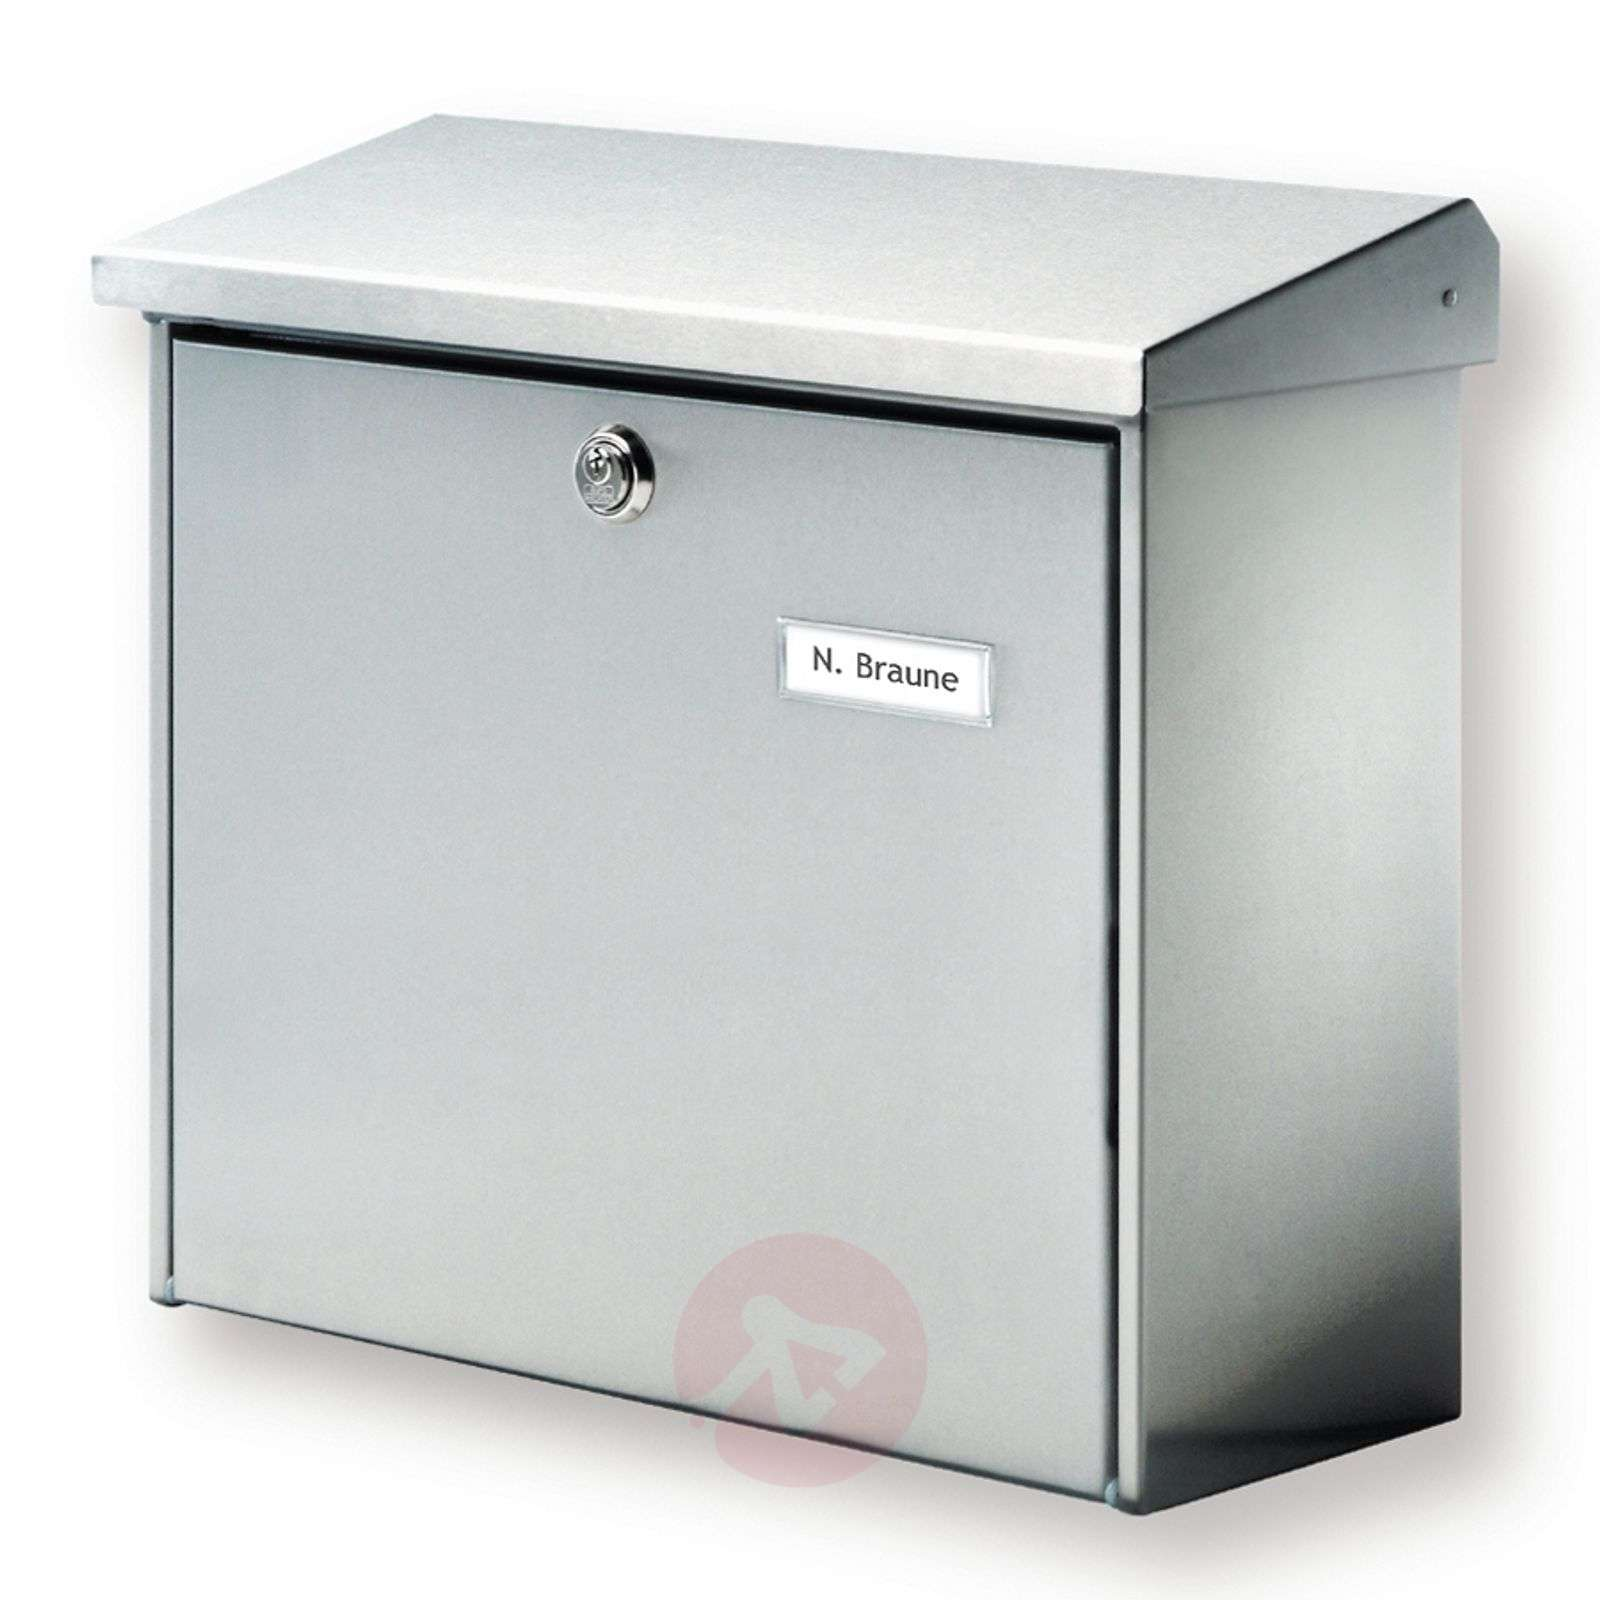 Stainless steel letterbox Comfort-1532028-01